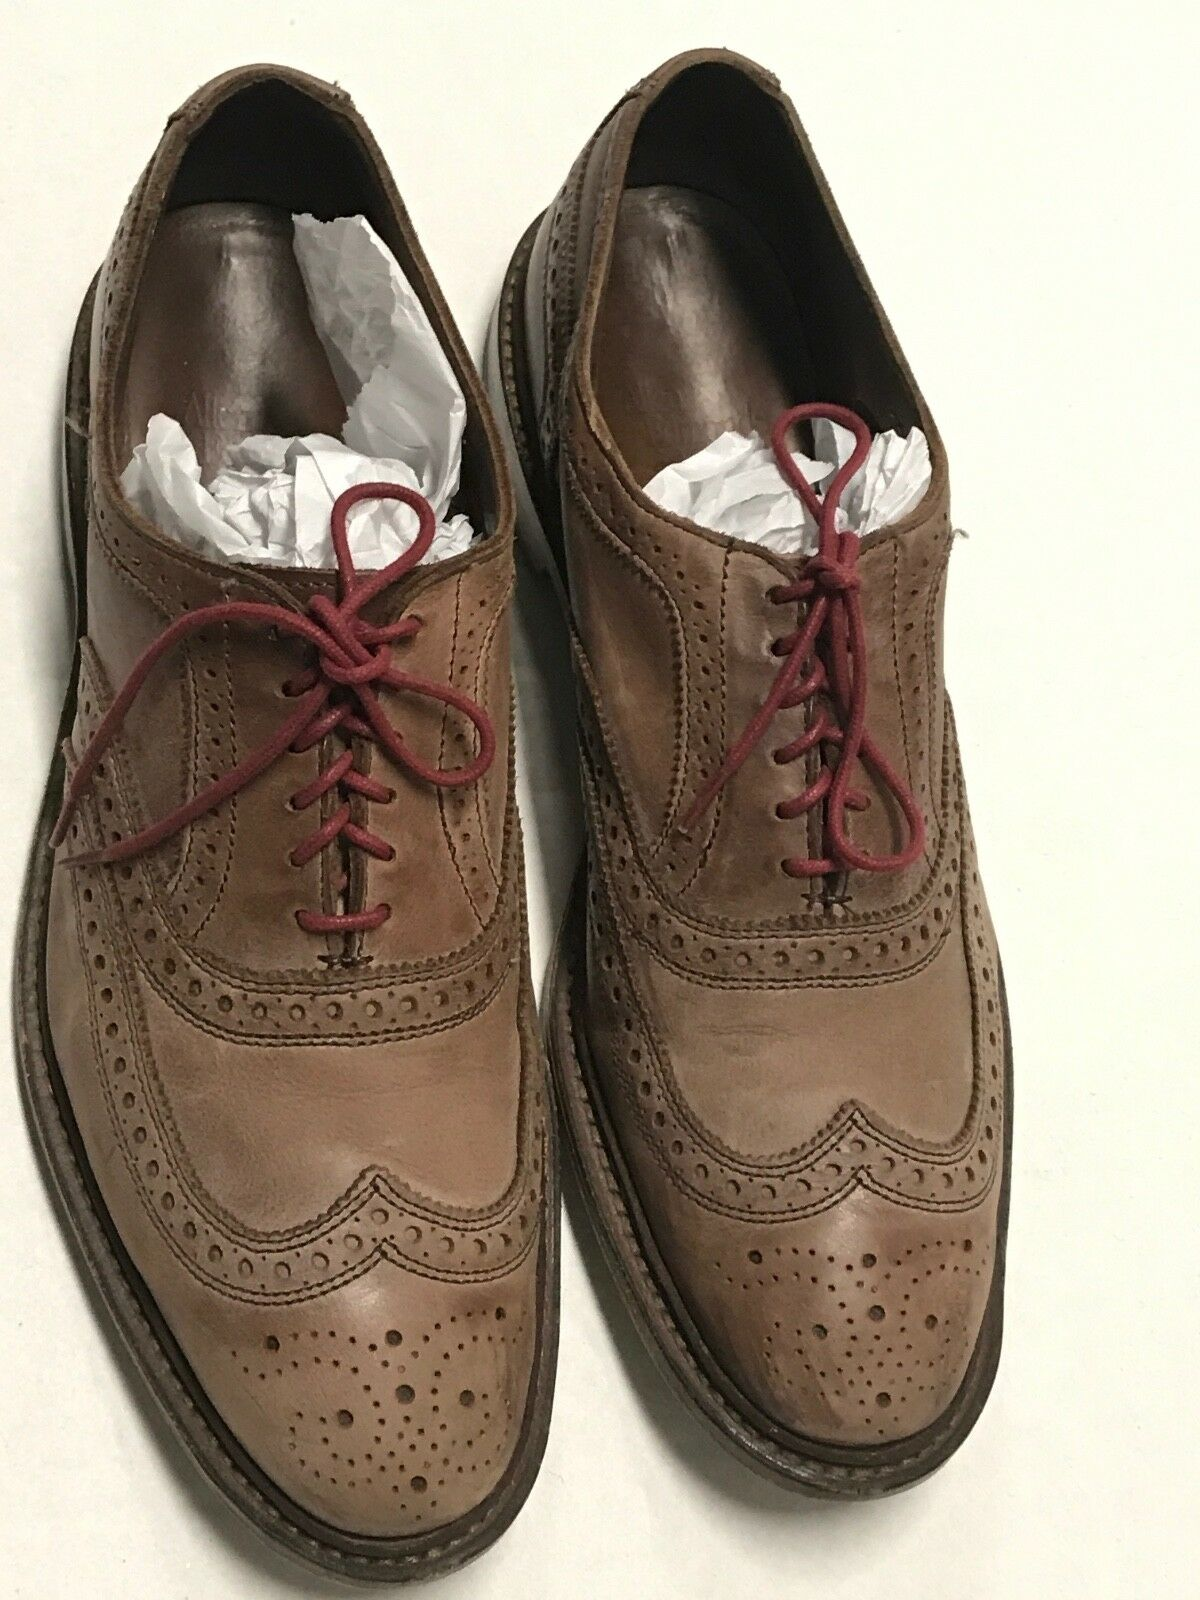 ALLEN Neumok EDMONDS Neumok ALLEN Sz 11 D Wingtip Shoes a017d4